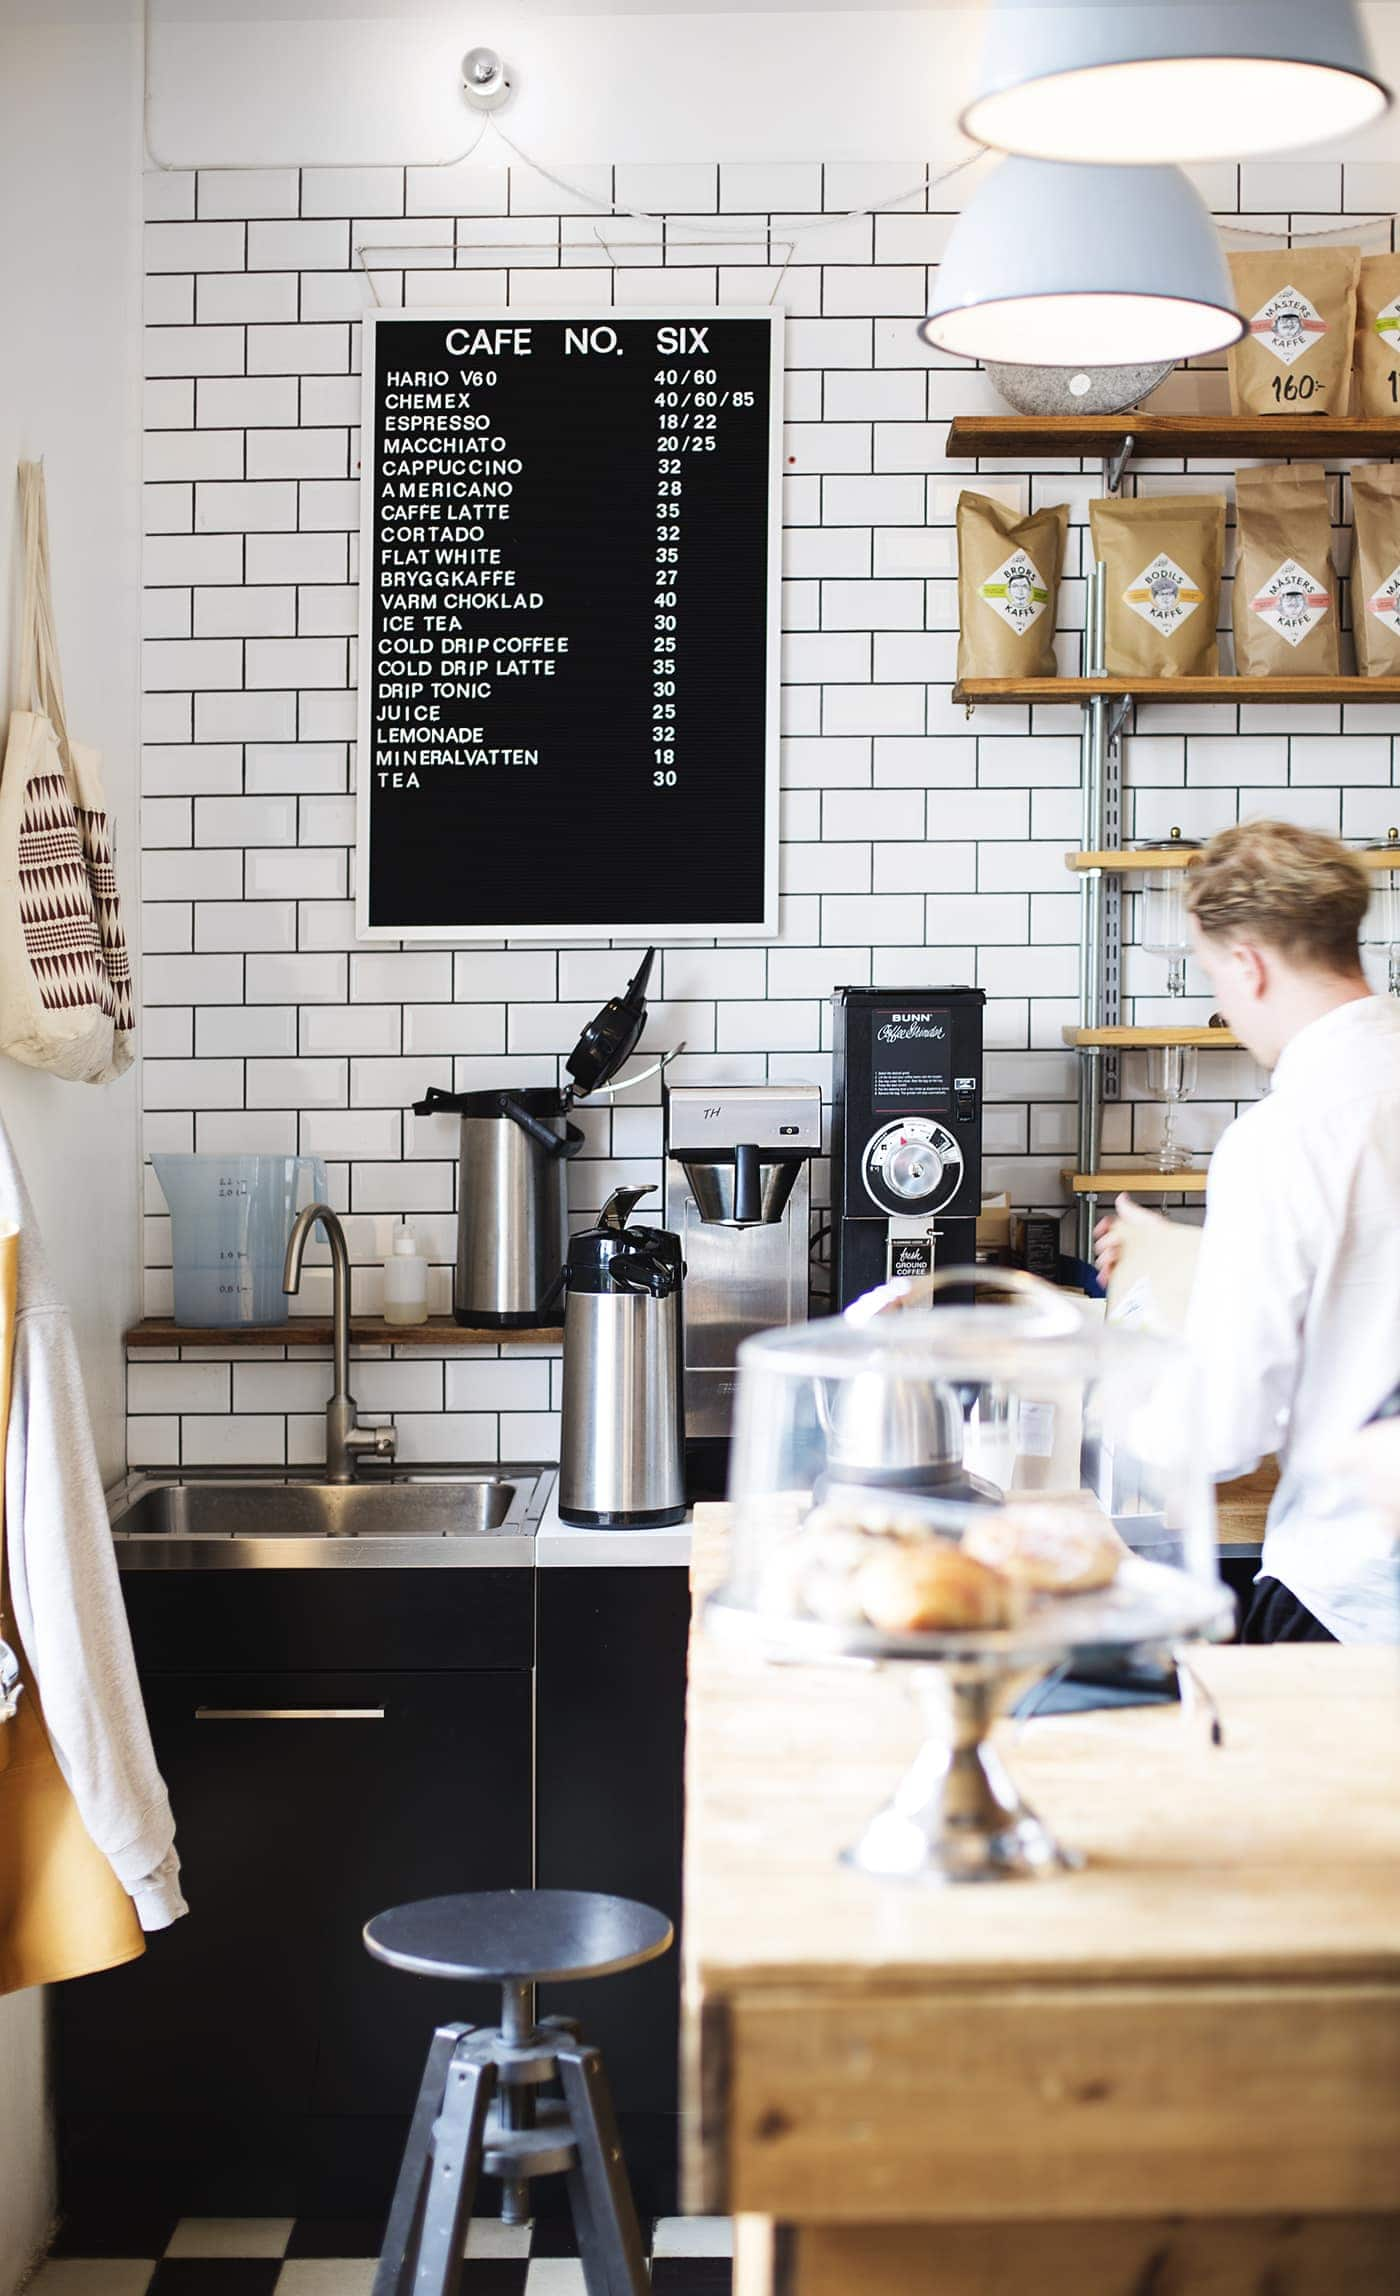 copenhagen-wanderlust-cafe-number-6-coffee-lovers-malmo